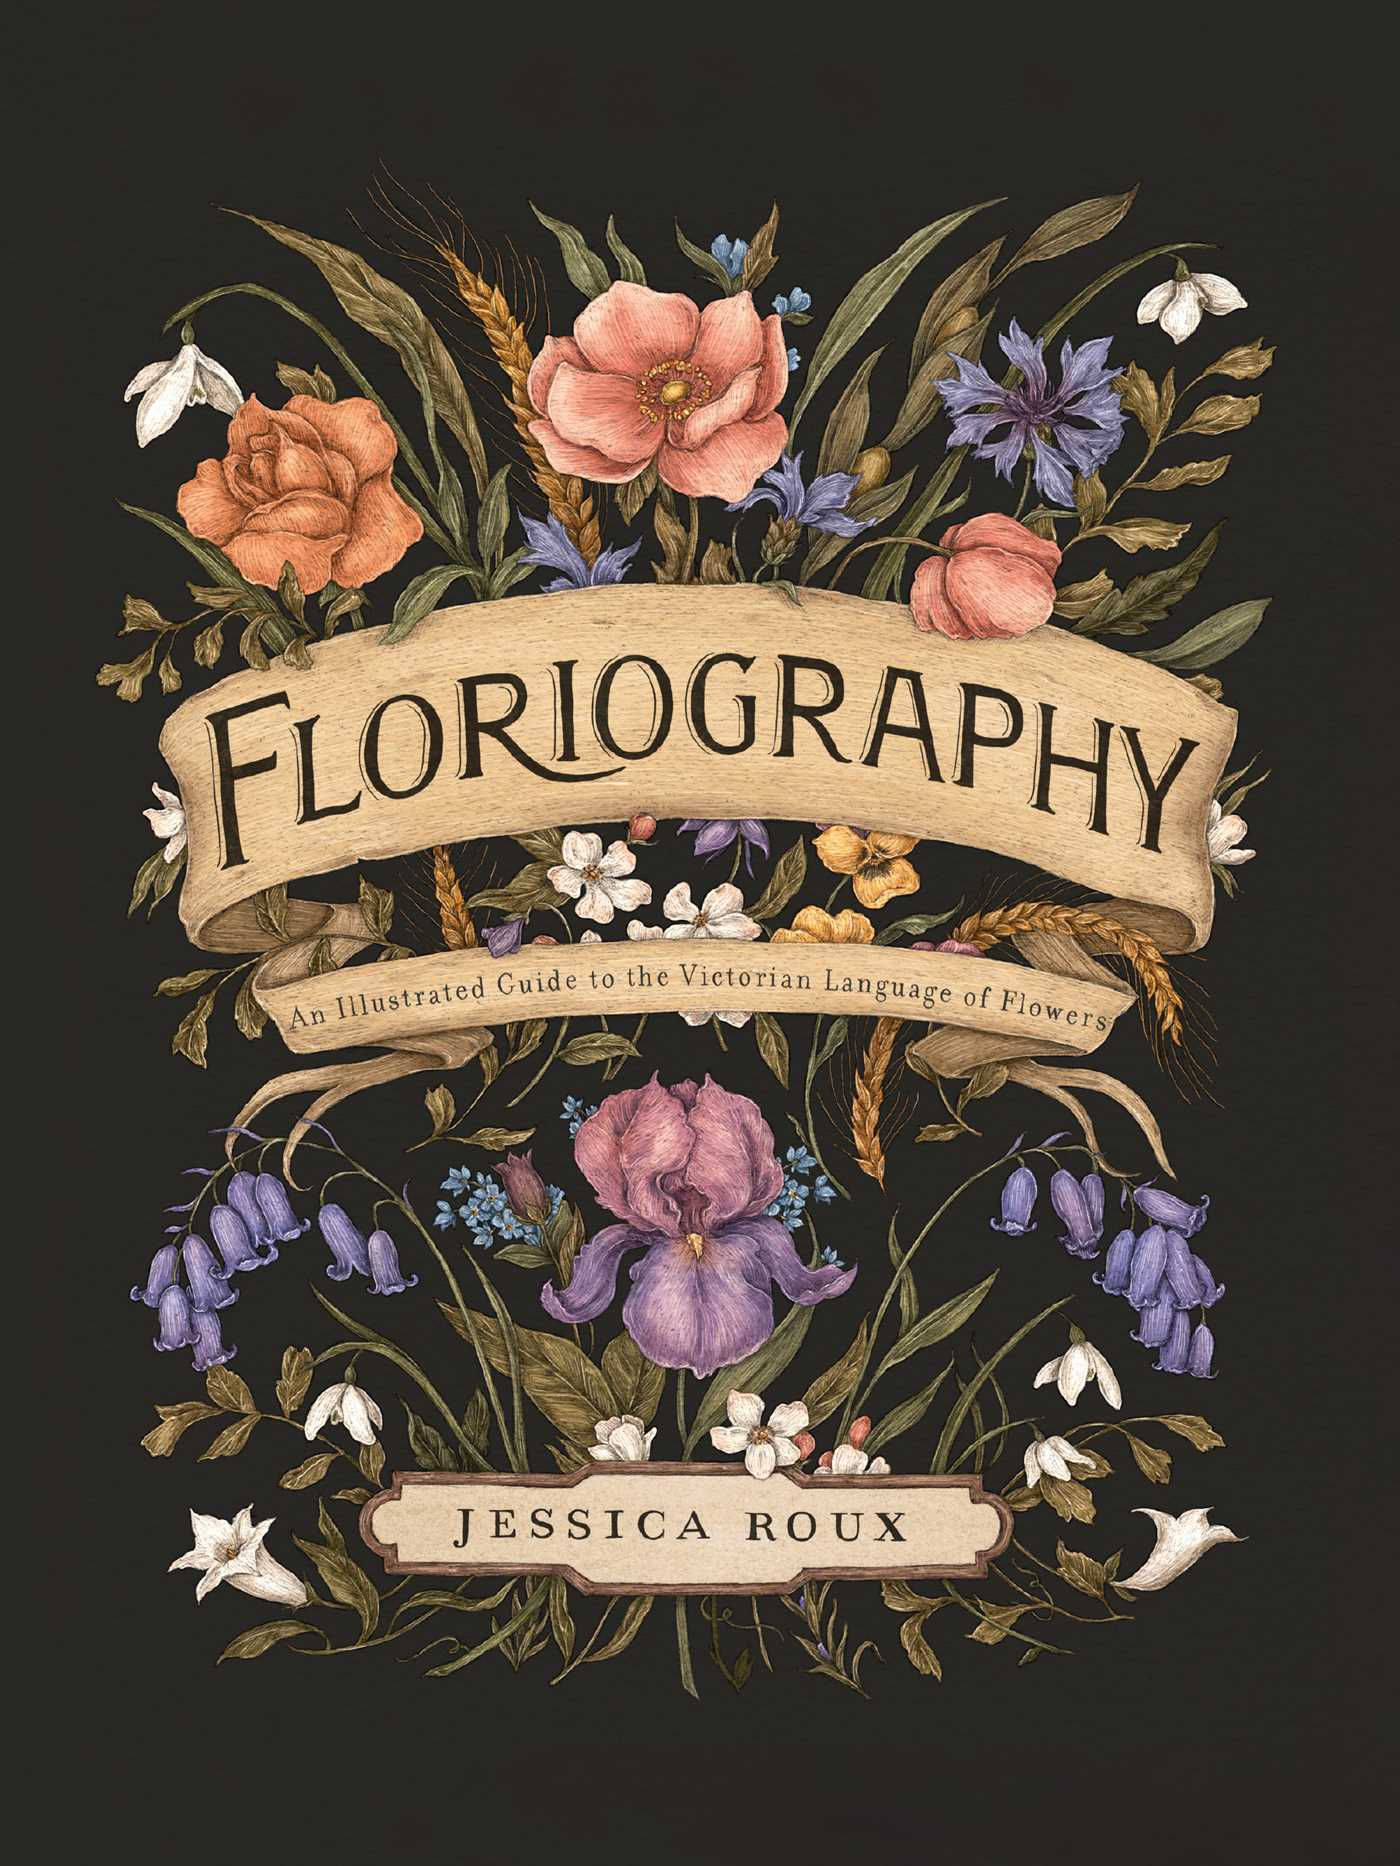 Floriography By Jessica Roux Release Date? 2020 Nonfiction Releases